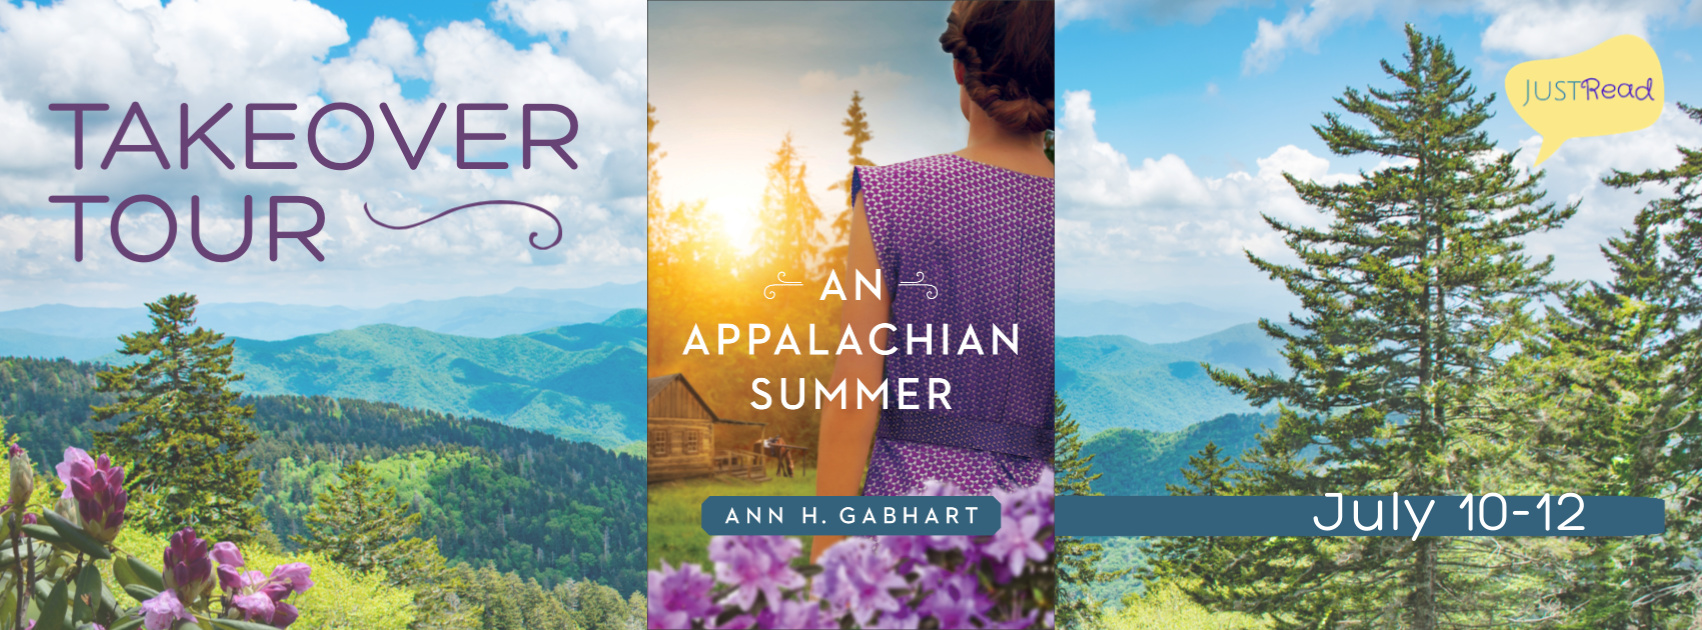 Welcome to An Appalachian Summer Takeover Tour & Giveaway!